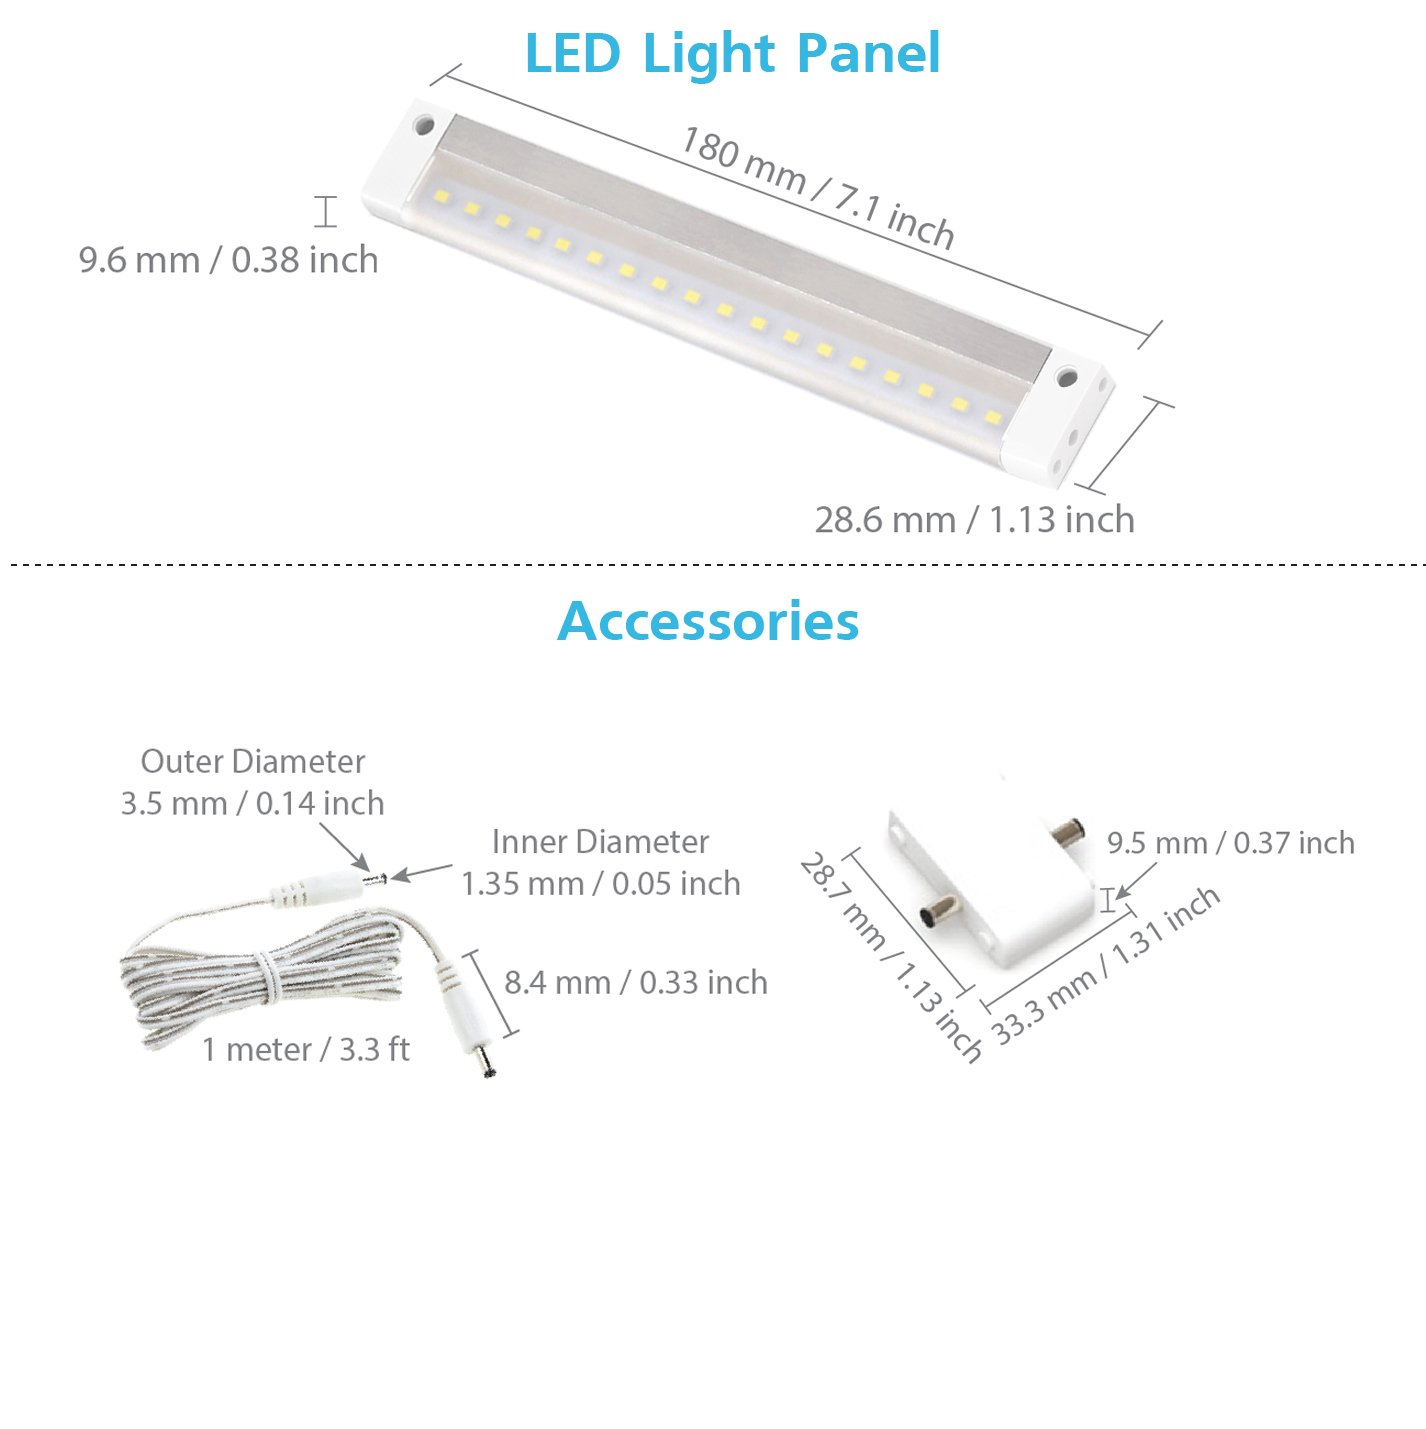 with Accessories EShine White Finish 12 inch LED Under Cabinet Lighting Bar Panel NO IR Sensor 3000K Warm White No Power Supply Included